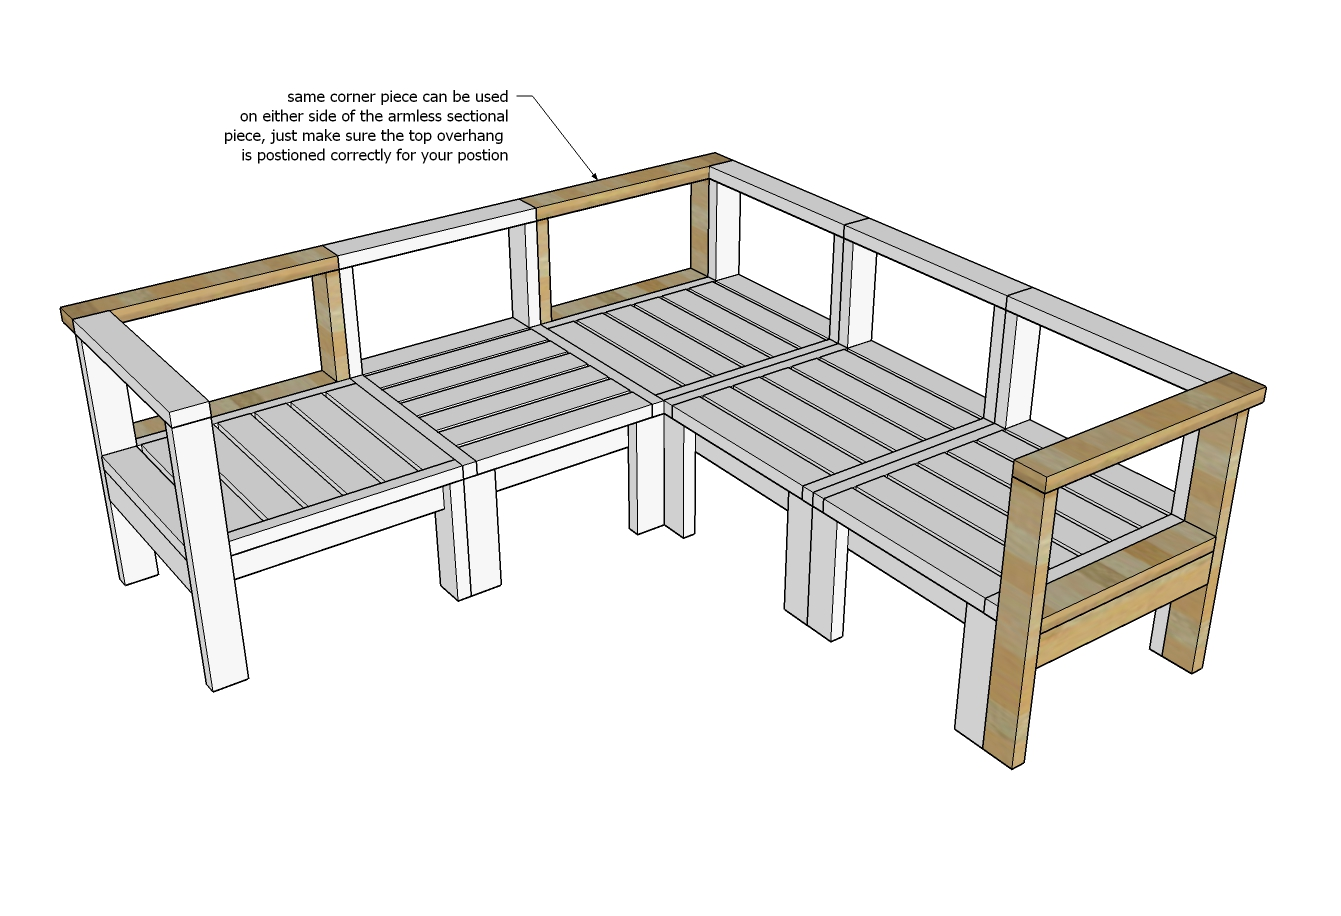 diagram of outdoor sectional piece with corner modification